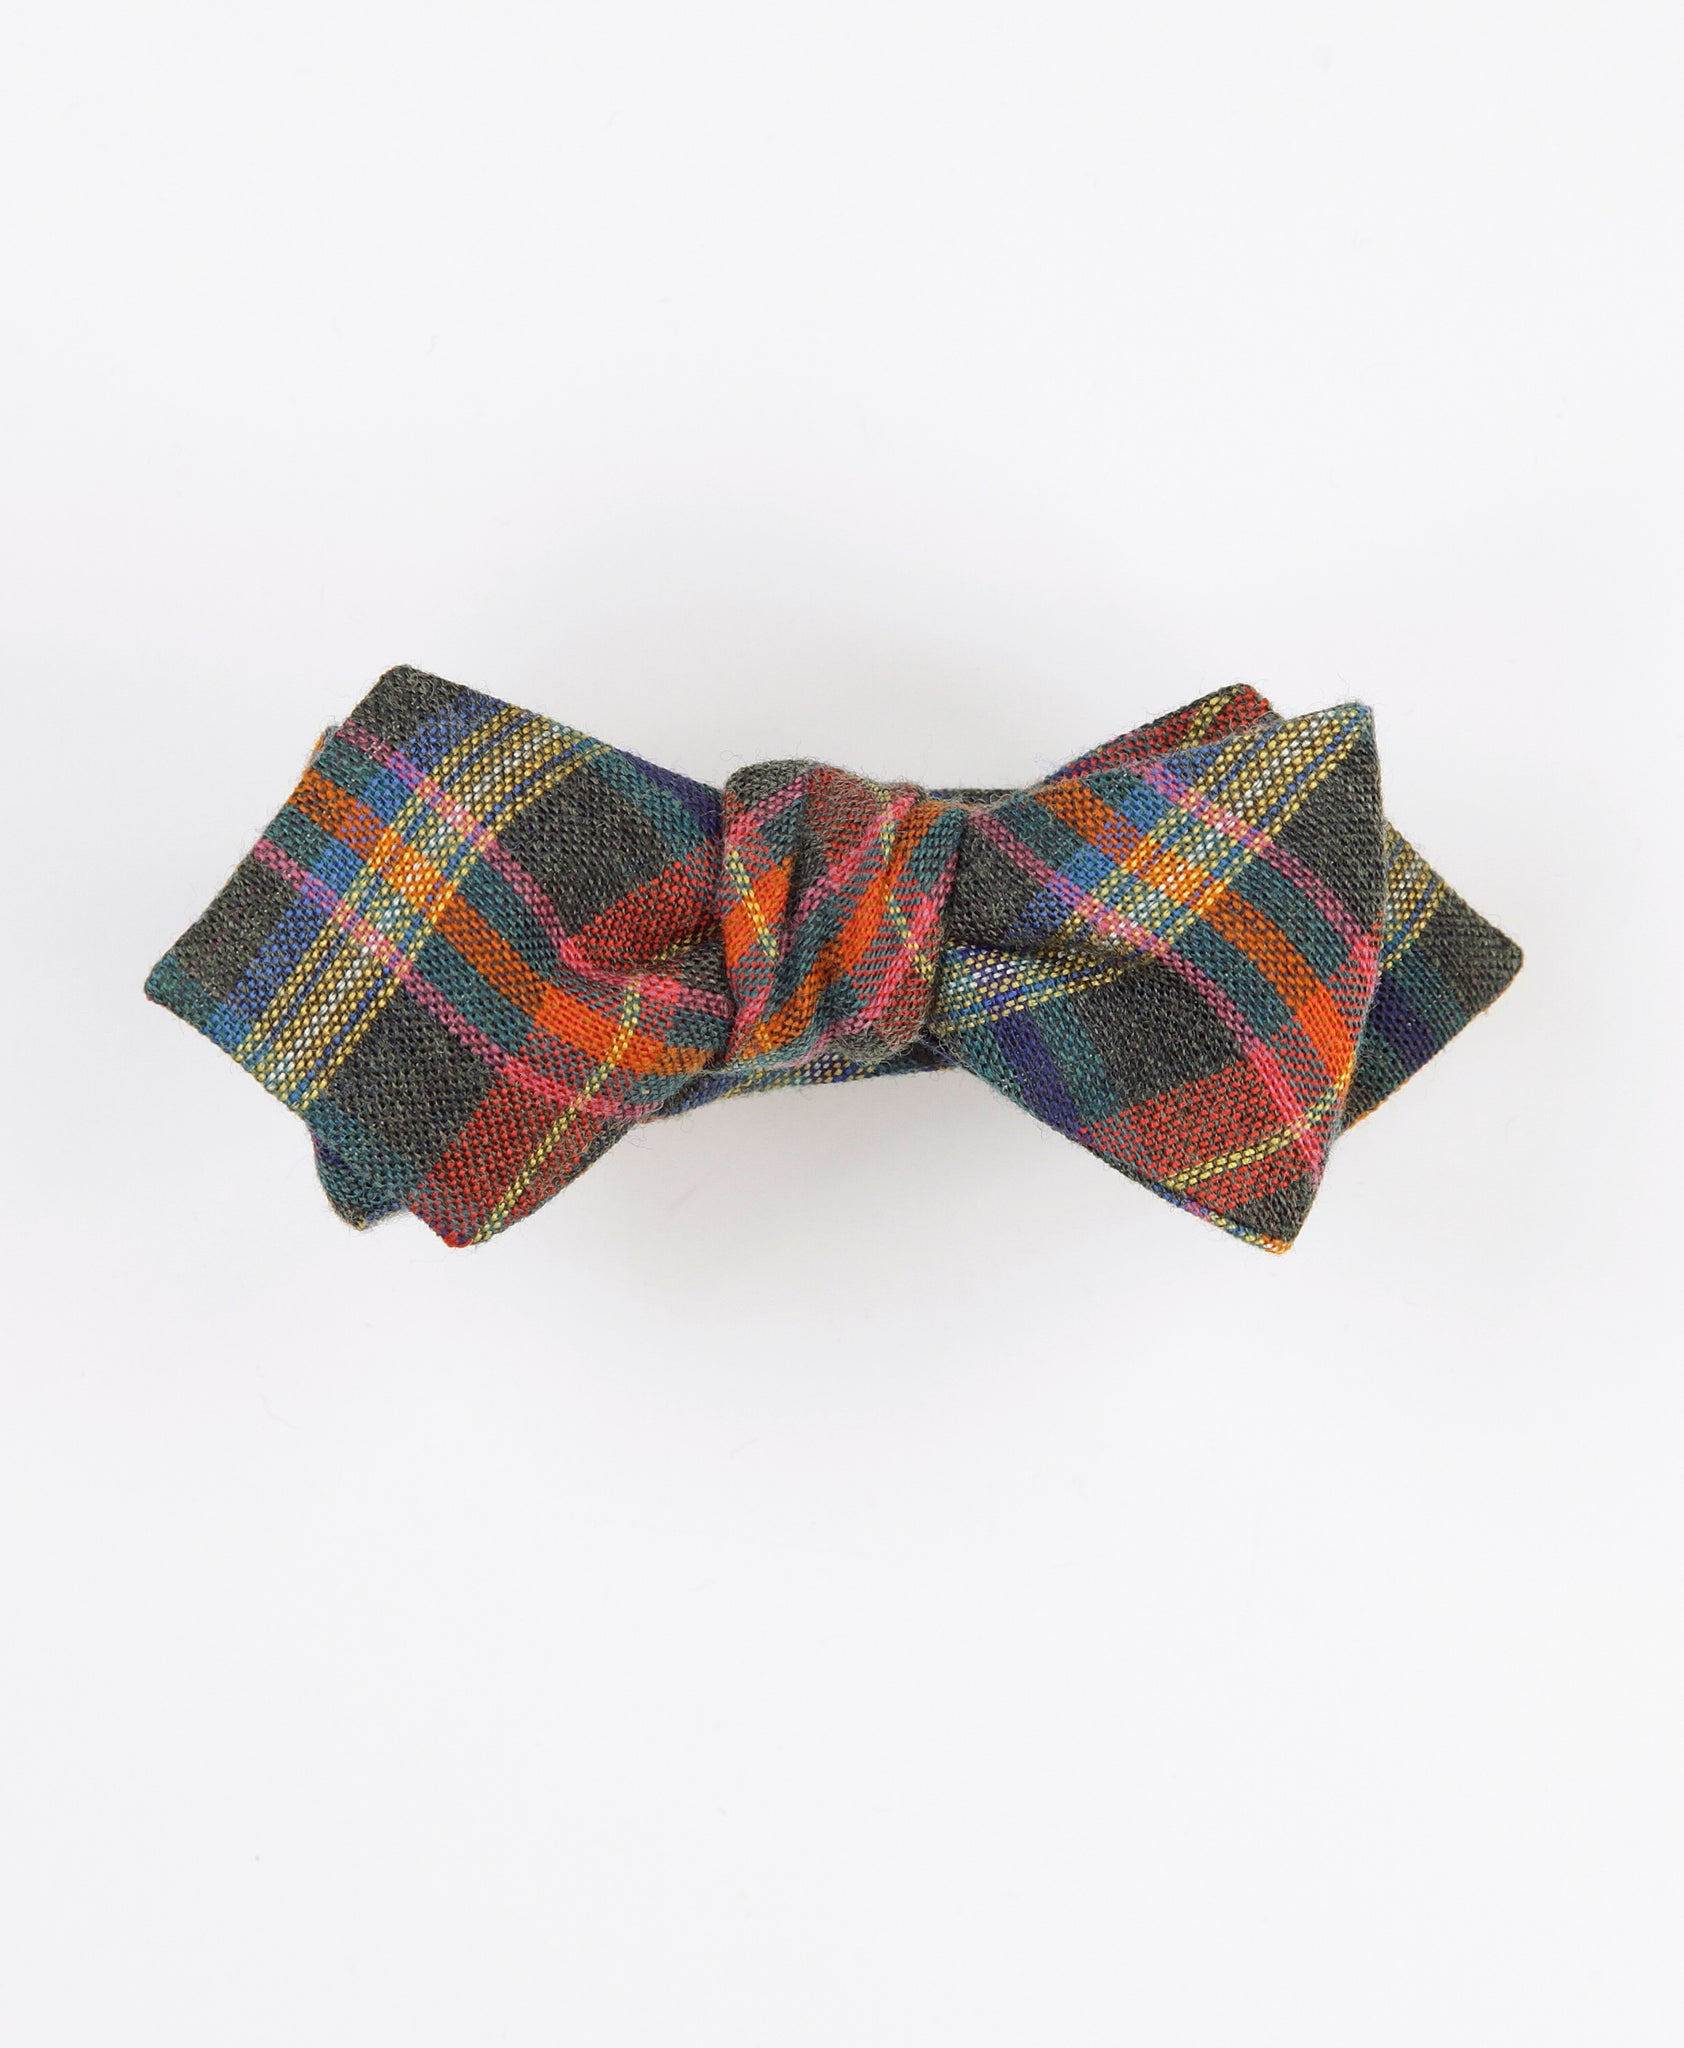 The Festival Bow Tie